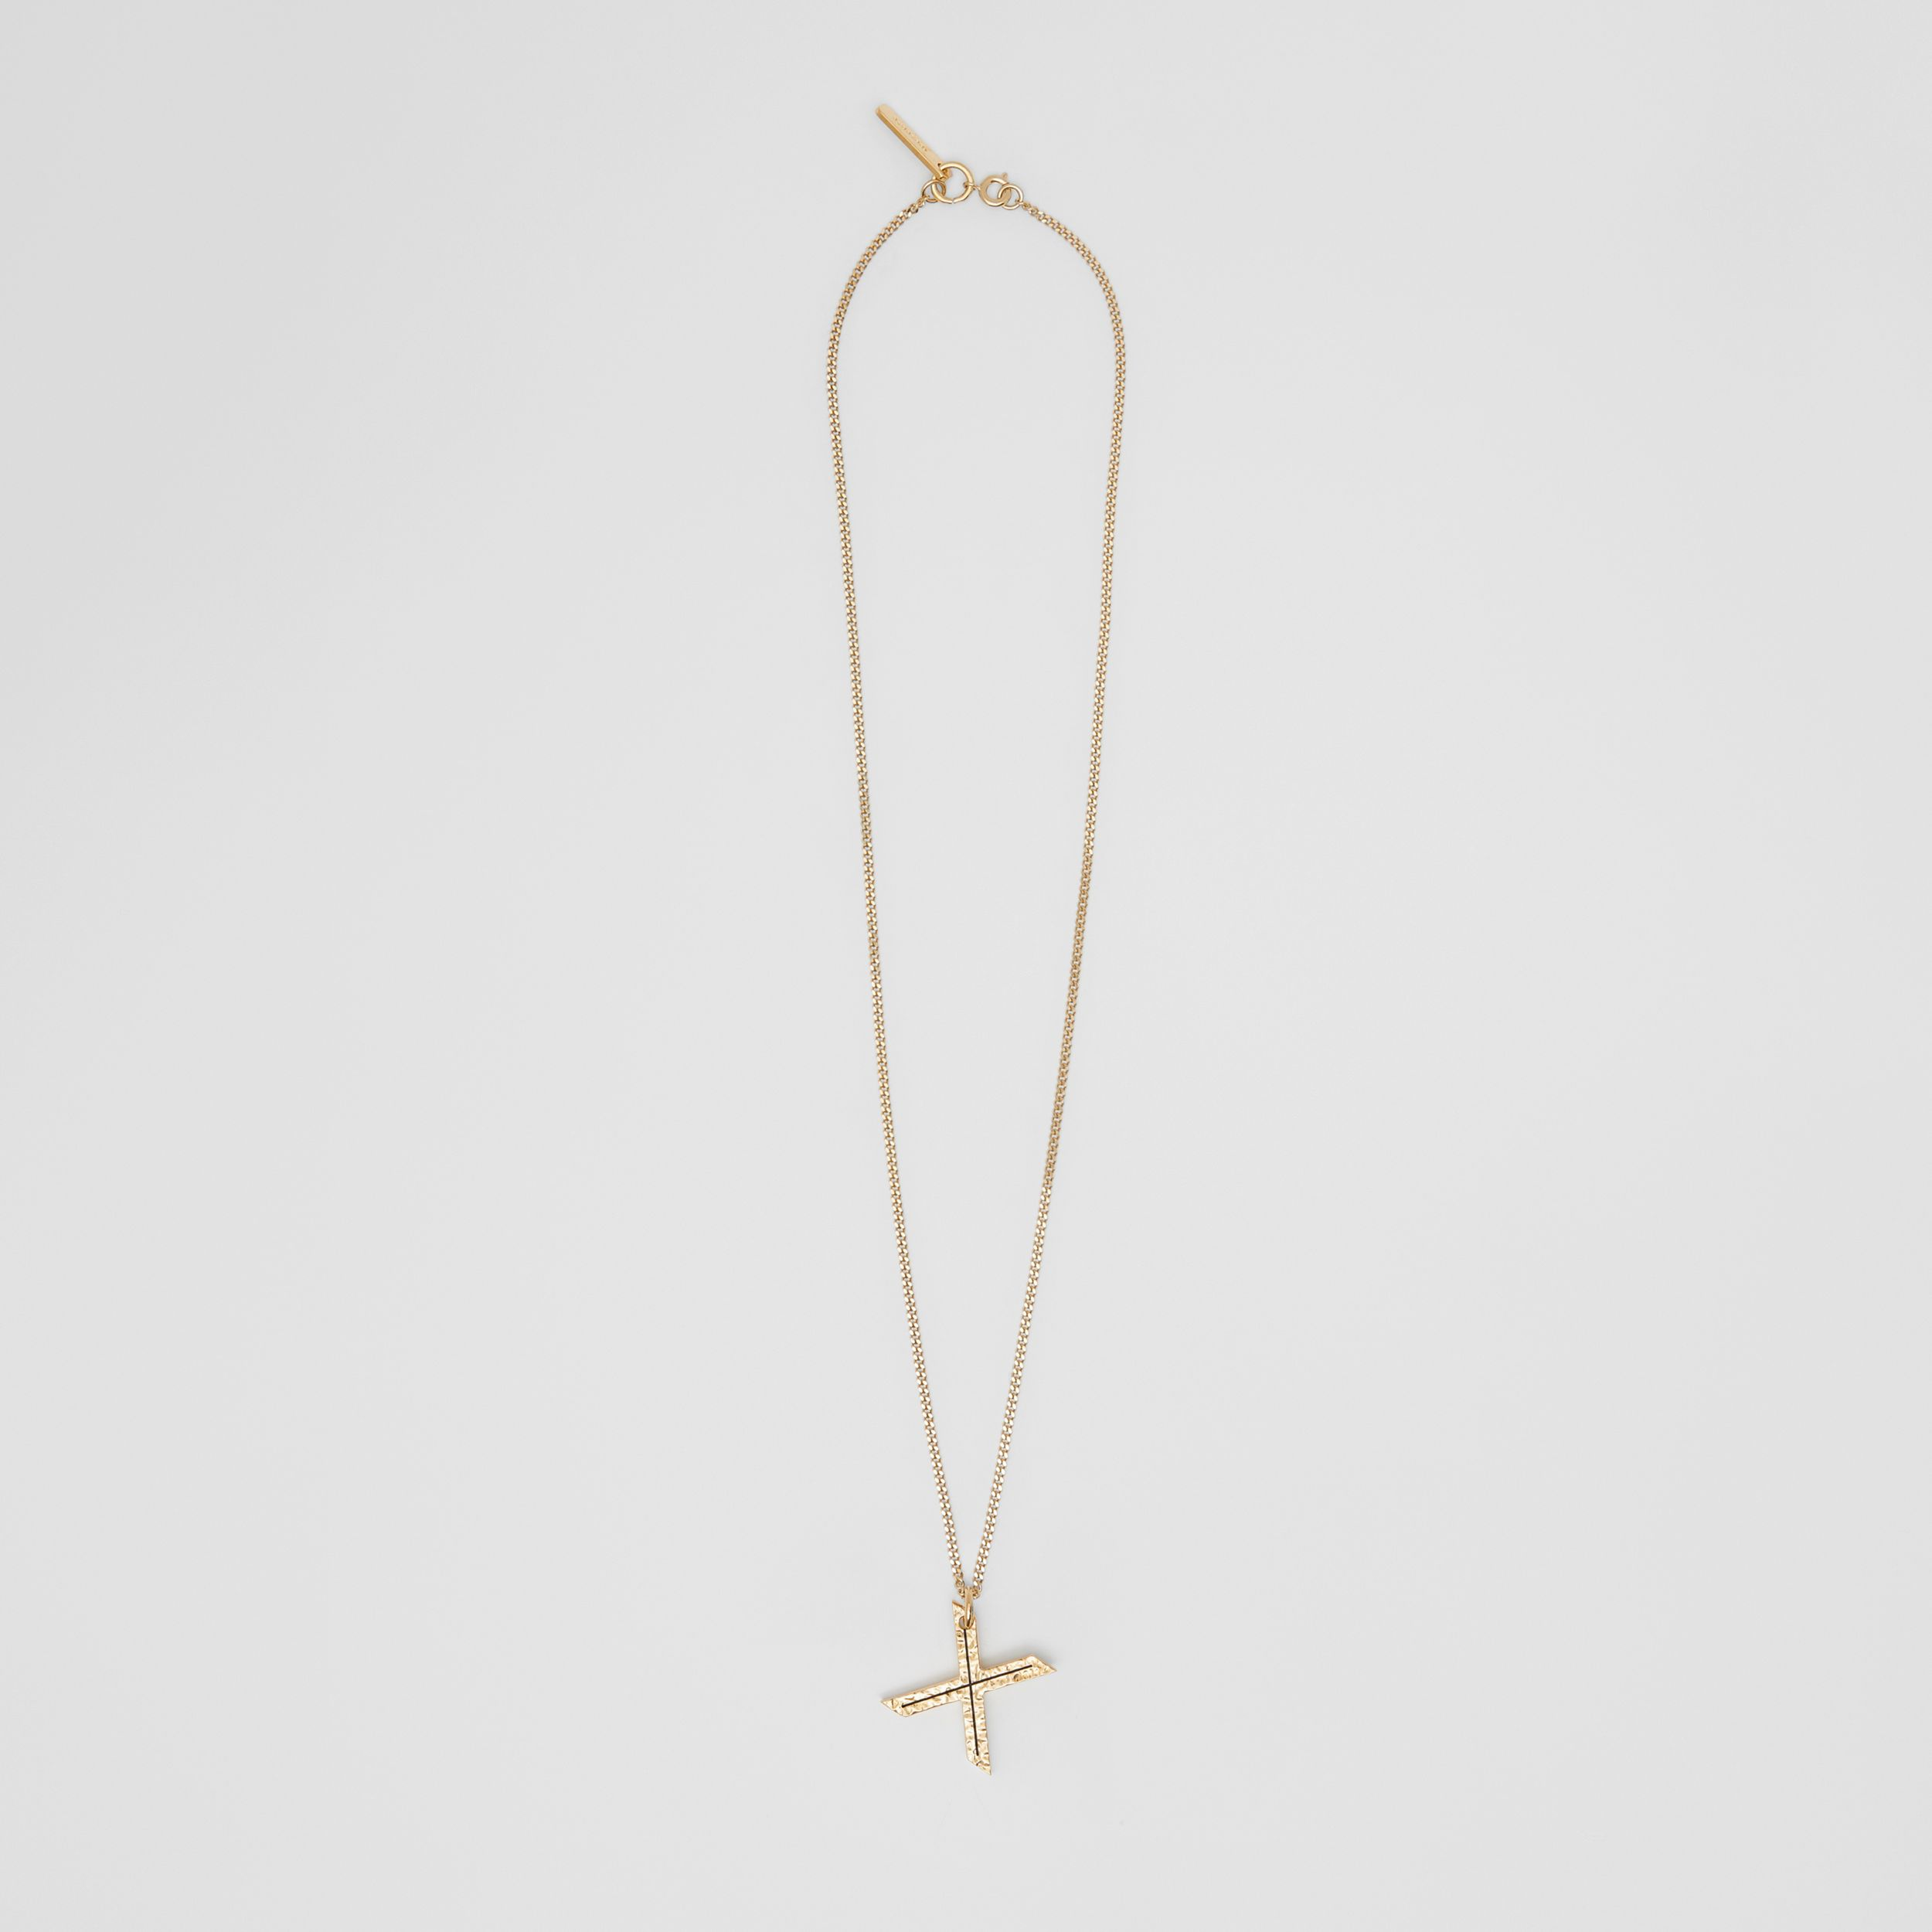 'X' Alphabet Charm Gold-plated Necklace in Light - Women | Burberry - 1